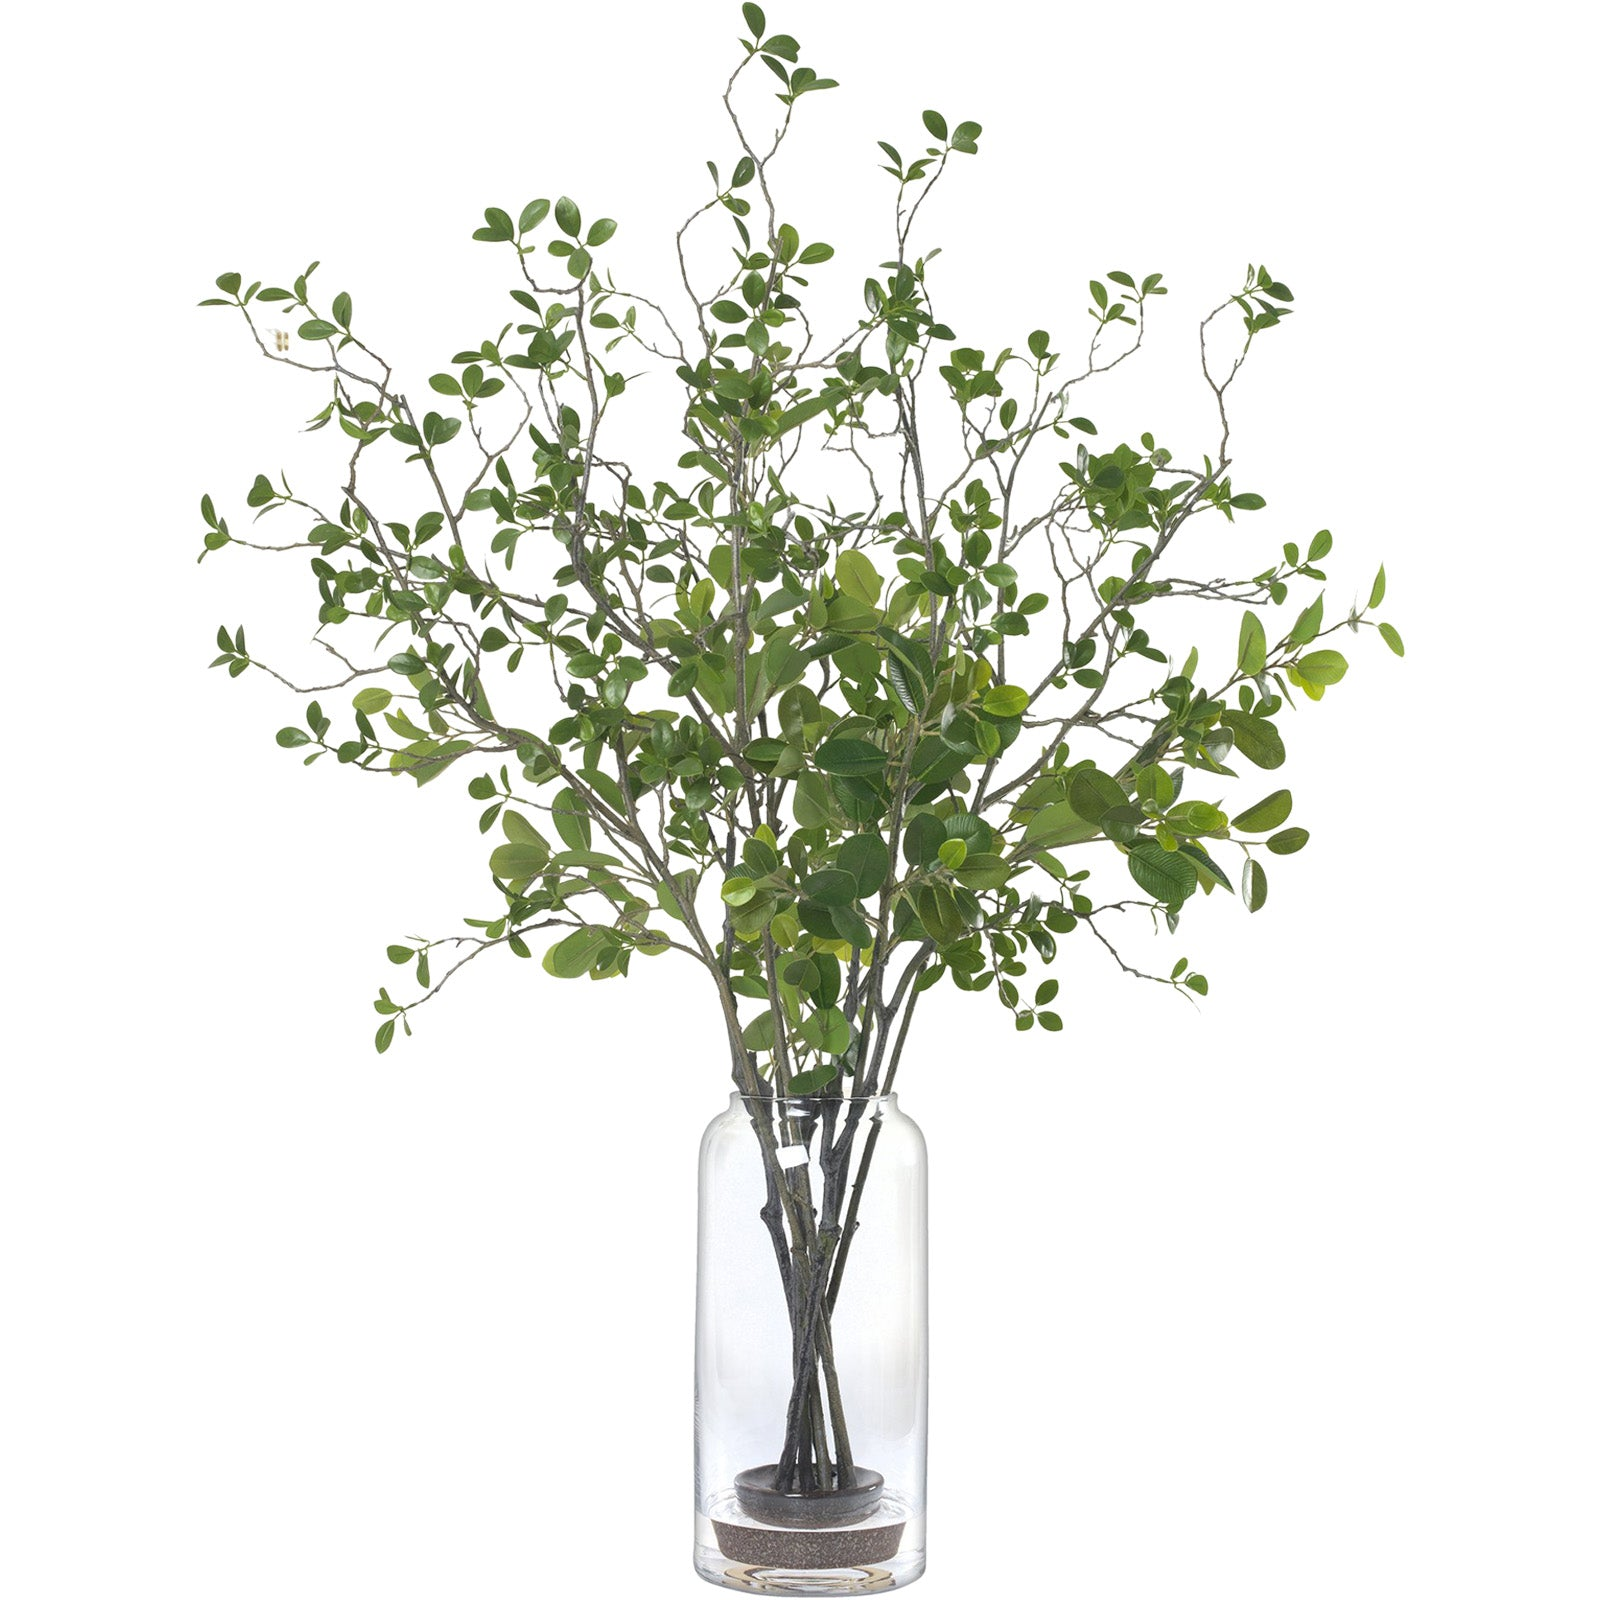 Tall Ficus Branche Arrangement